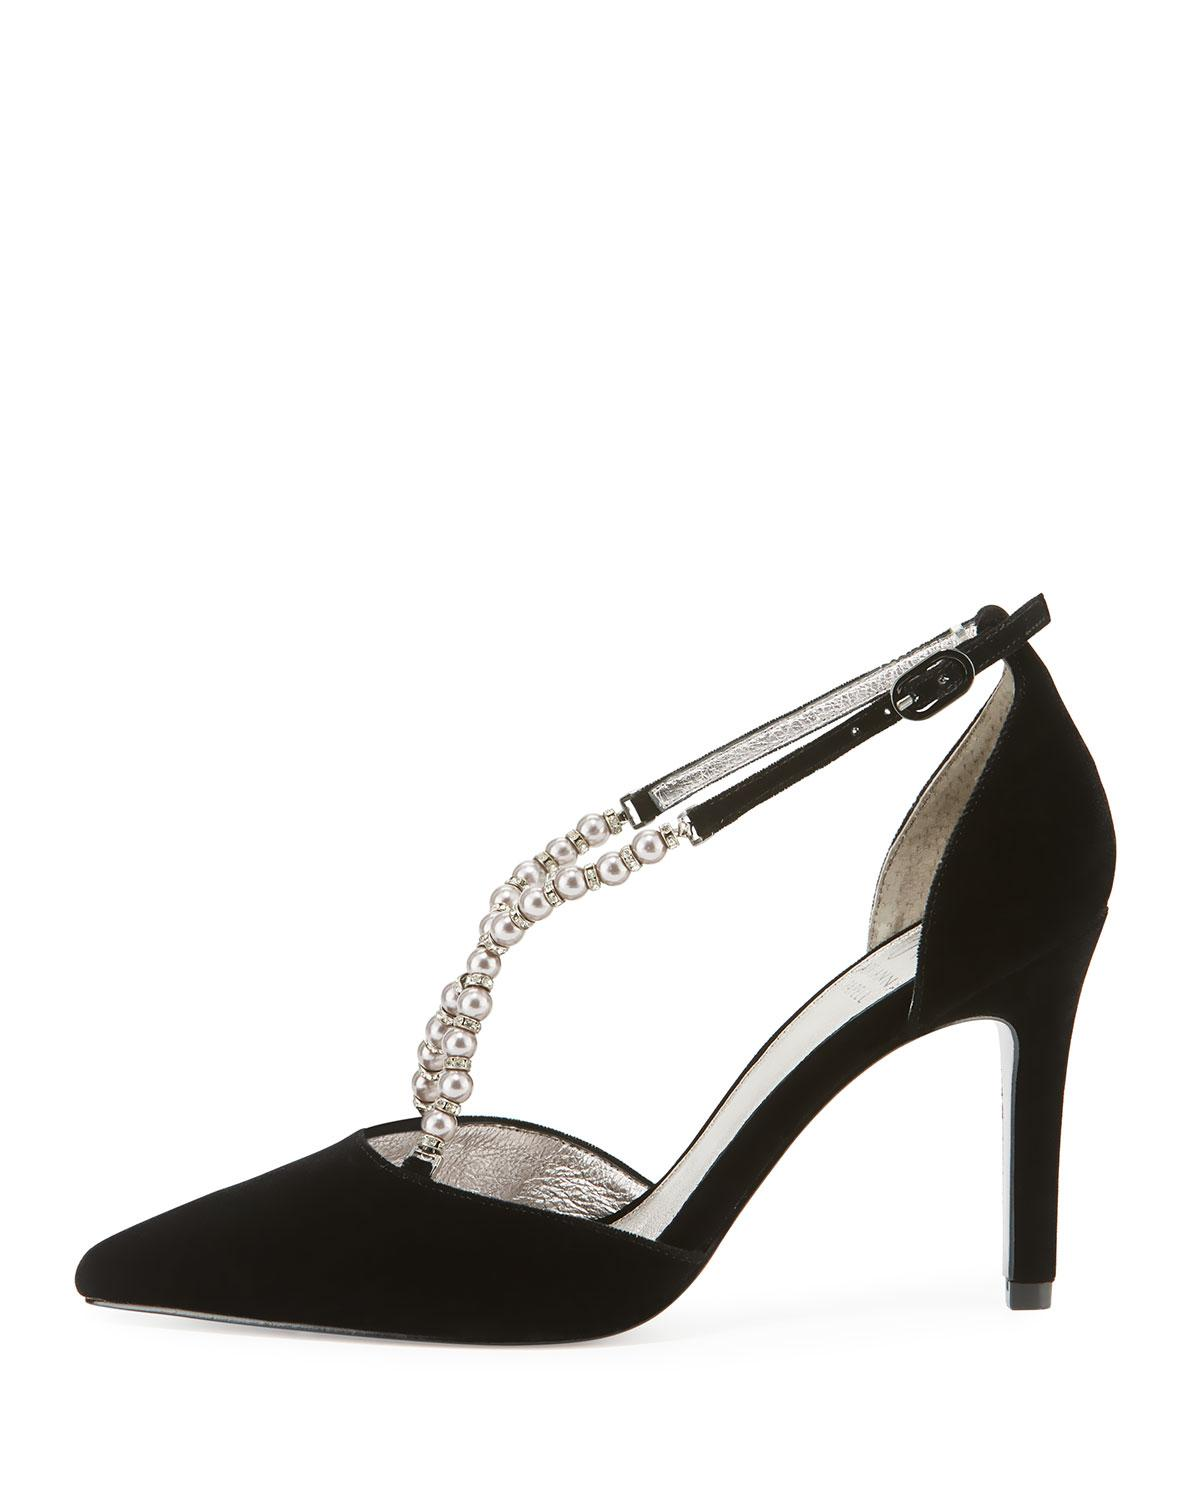 a0694cd858d7 Lyst - Adrianna Papell Pointed-toe Pumps With Beaded Straps in Black